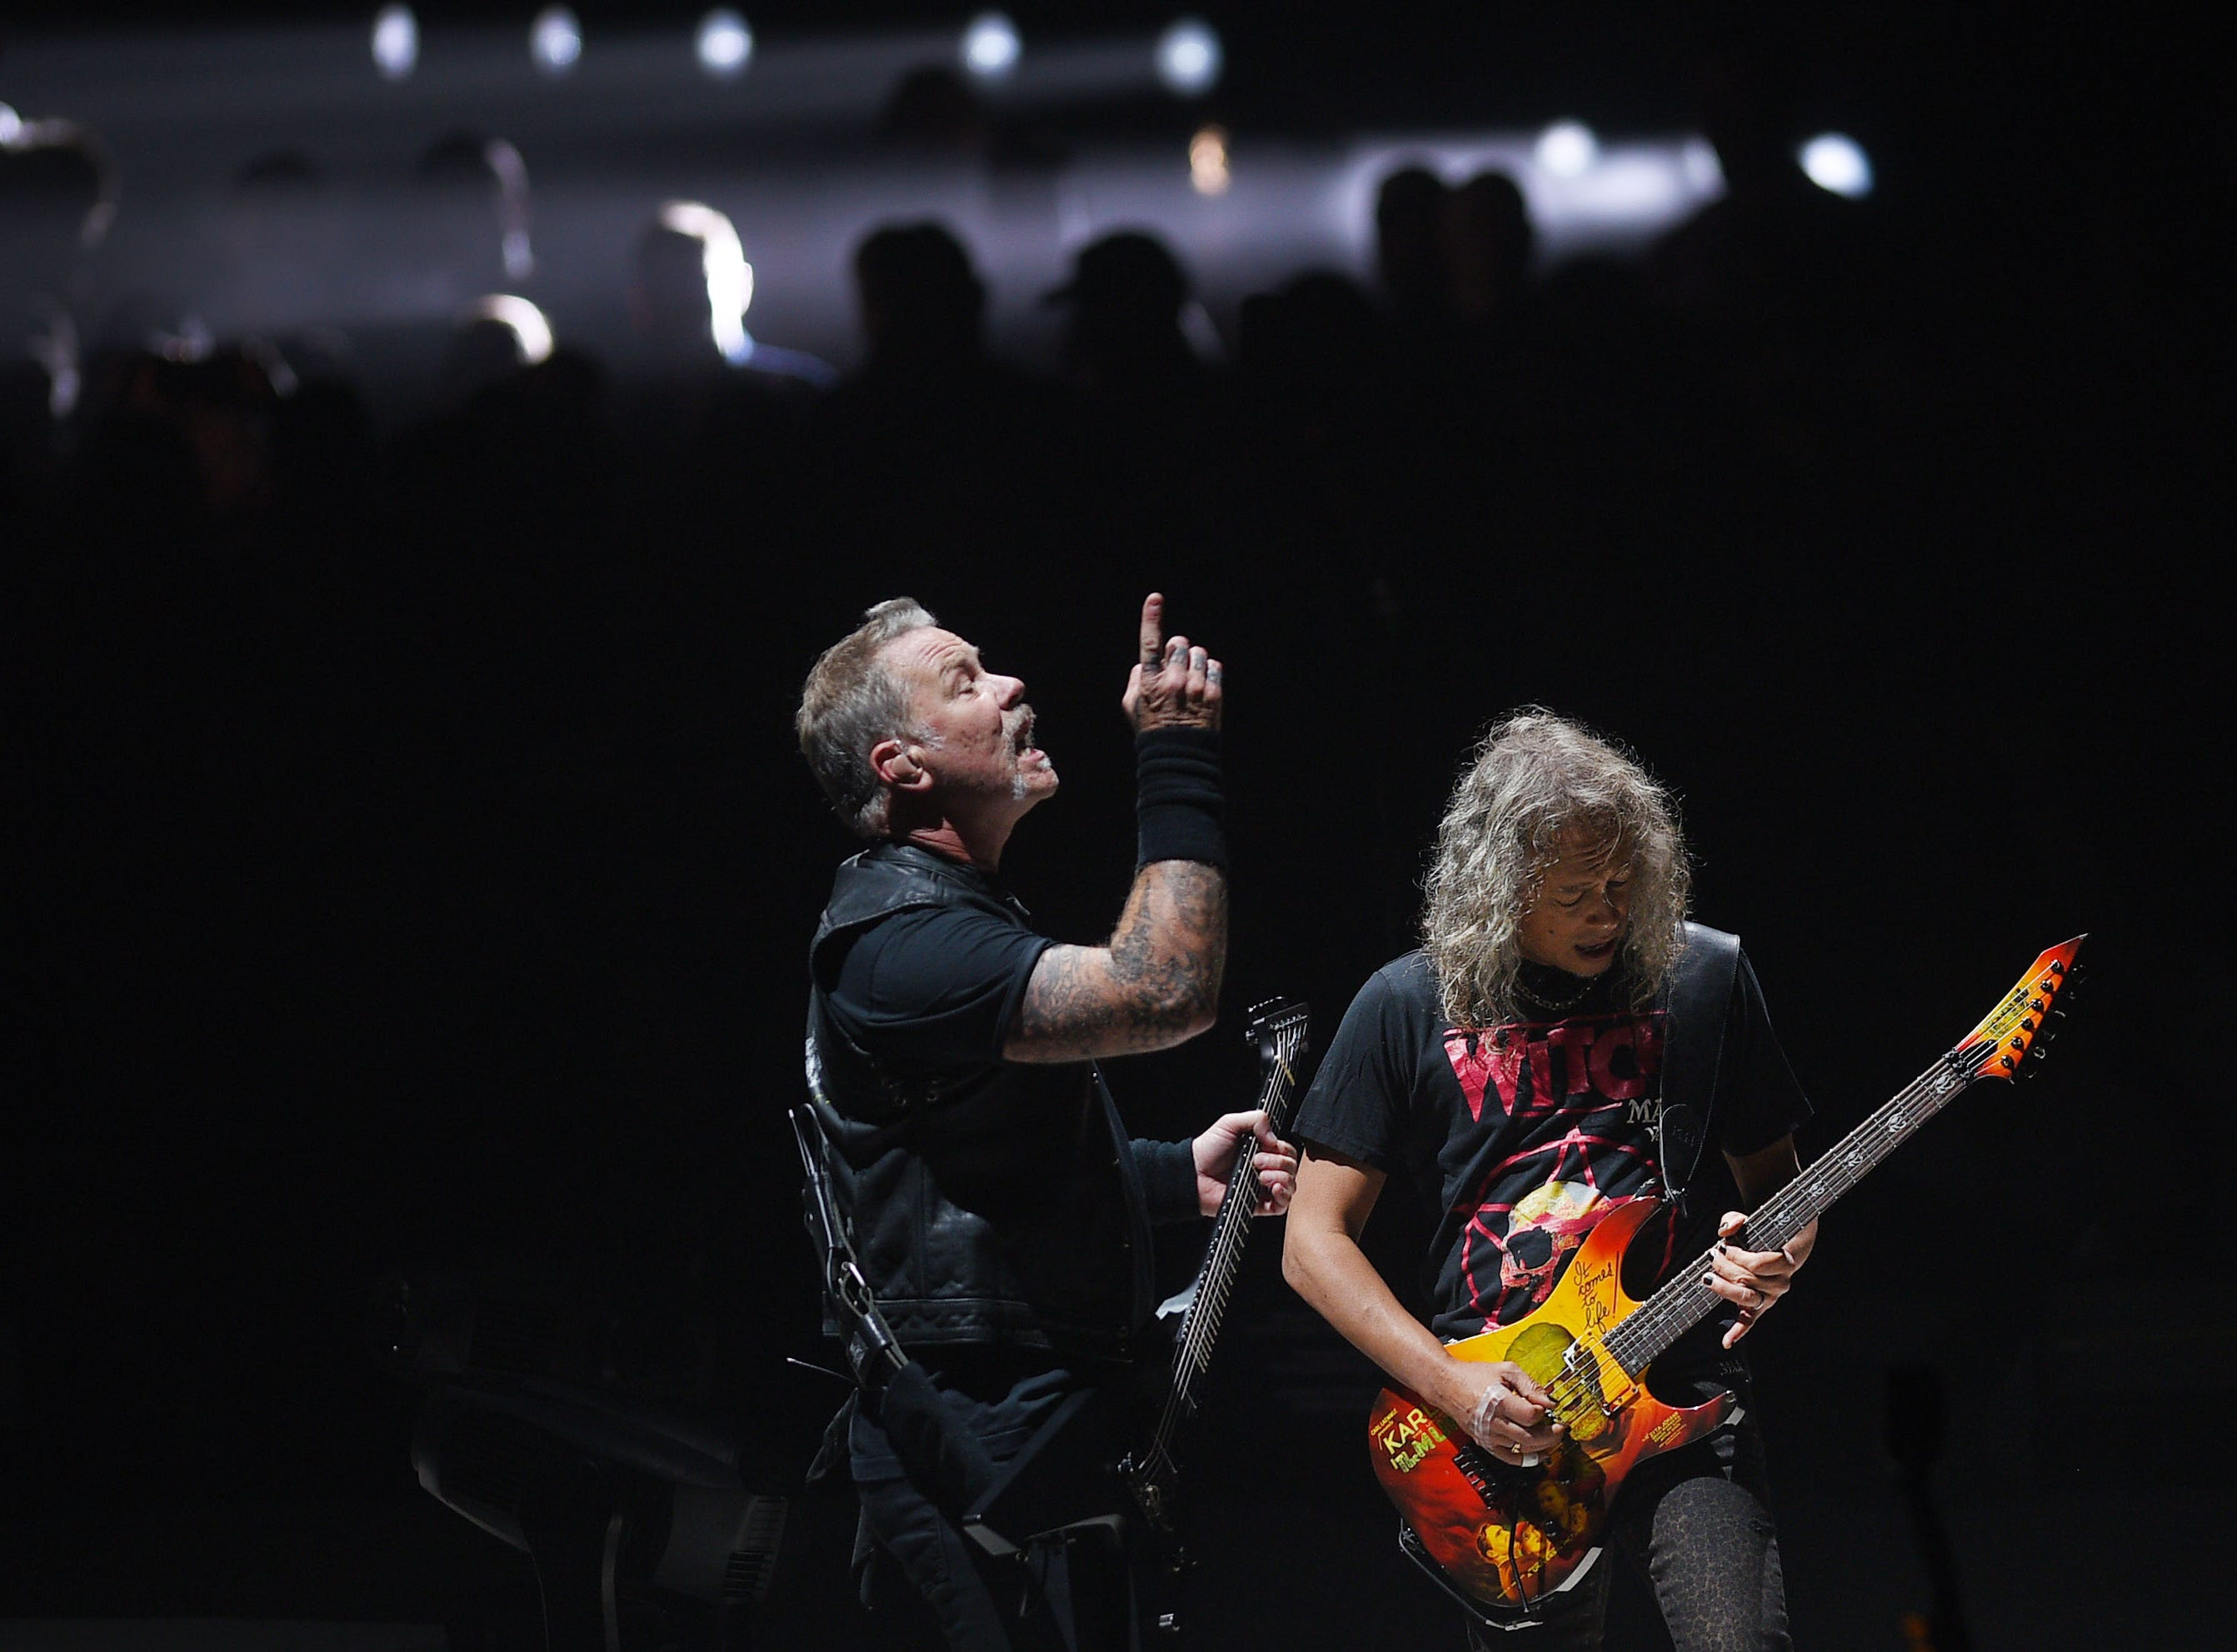 Metallica's James Hetfield and Kirk Hammett perform with the band Tuesday, Sept. 11, at the Denny Sanford Premier Center in Sioux Falls.